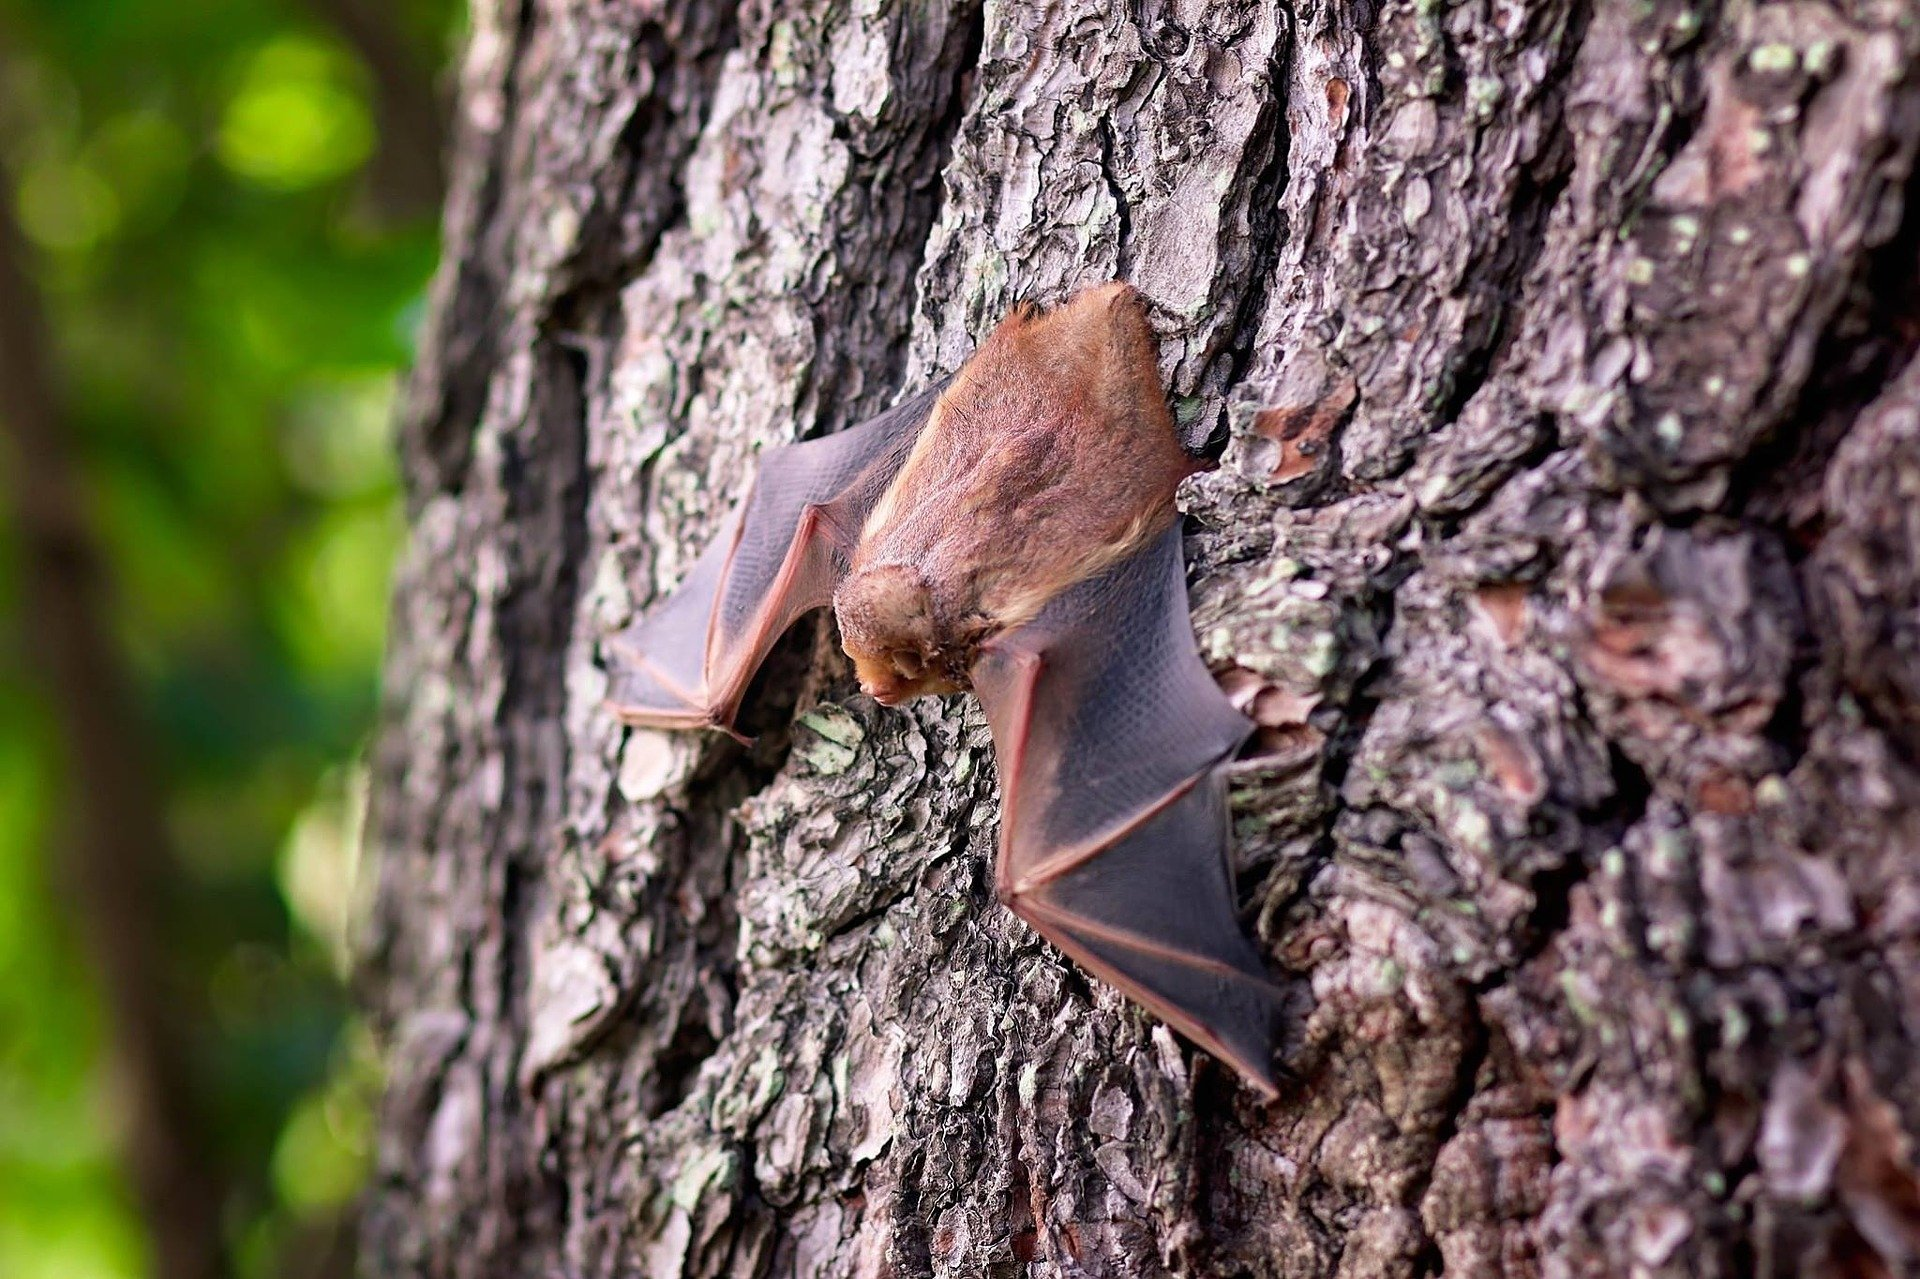 North American Bat